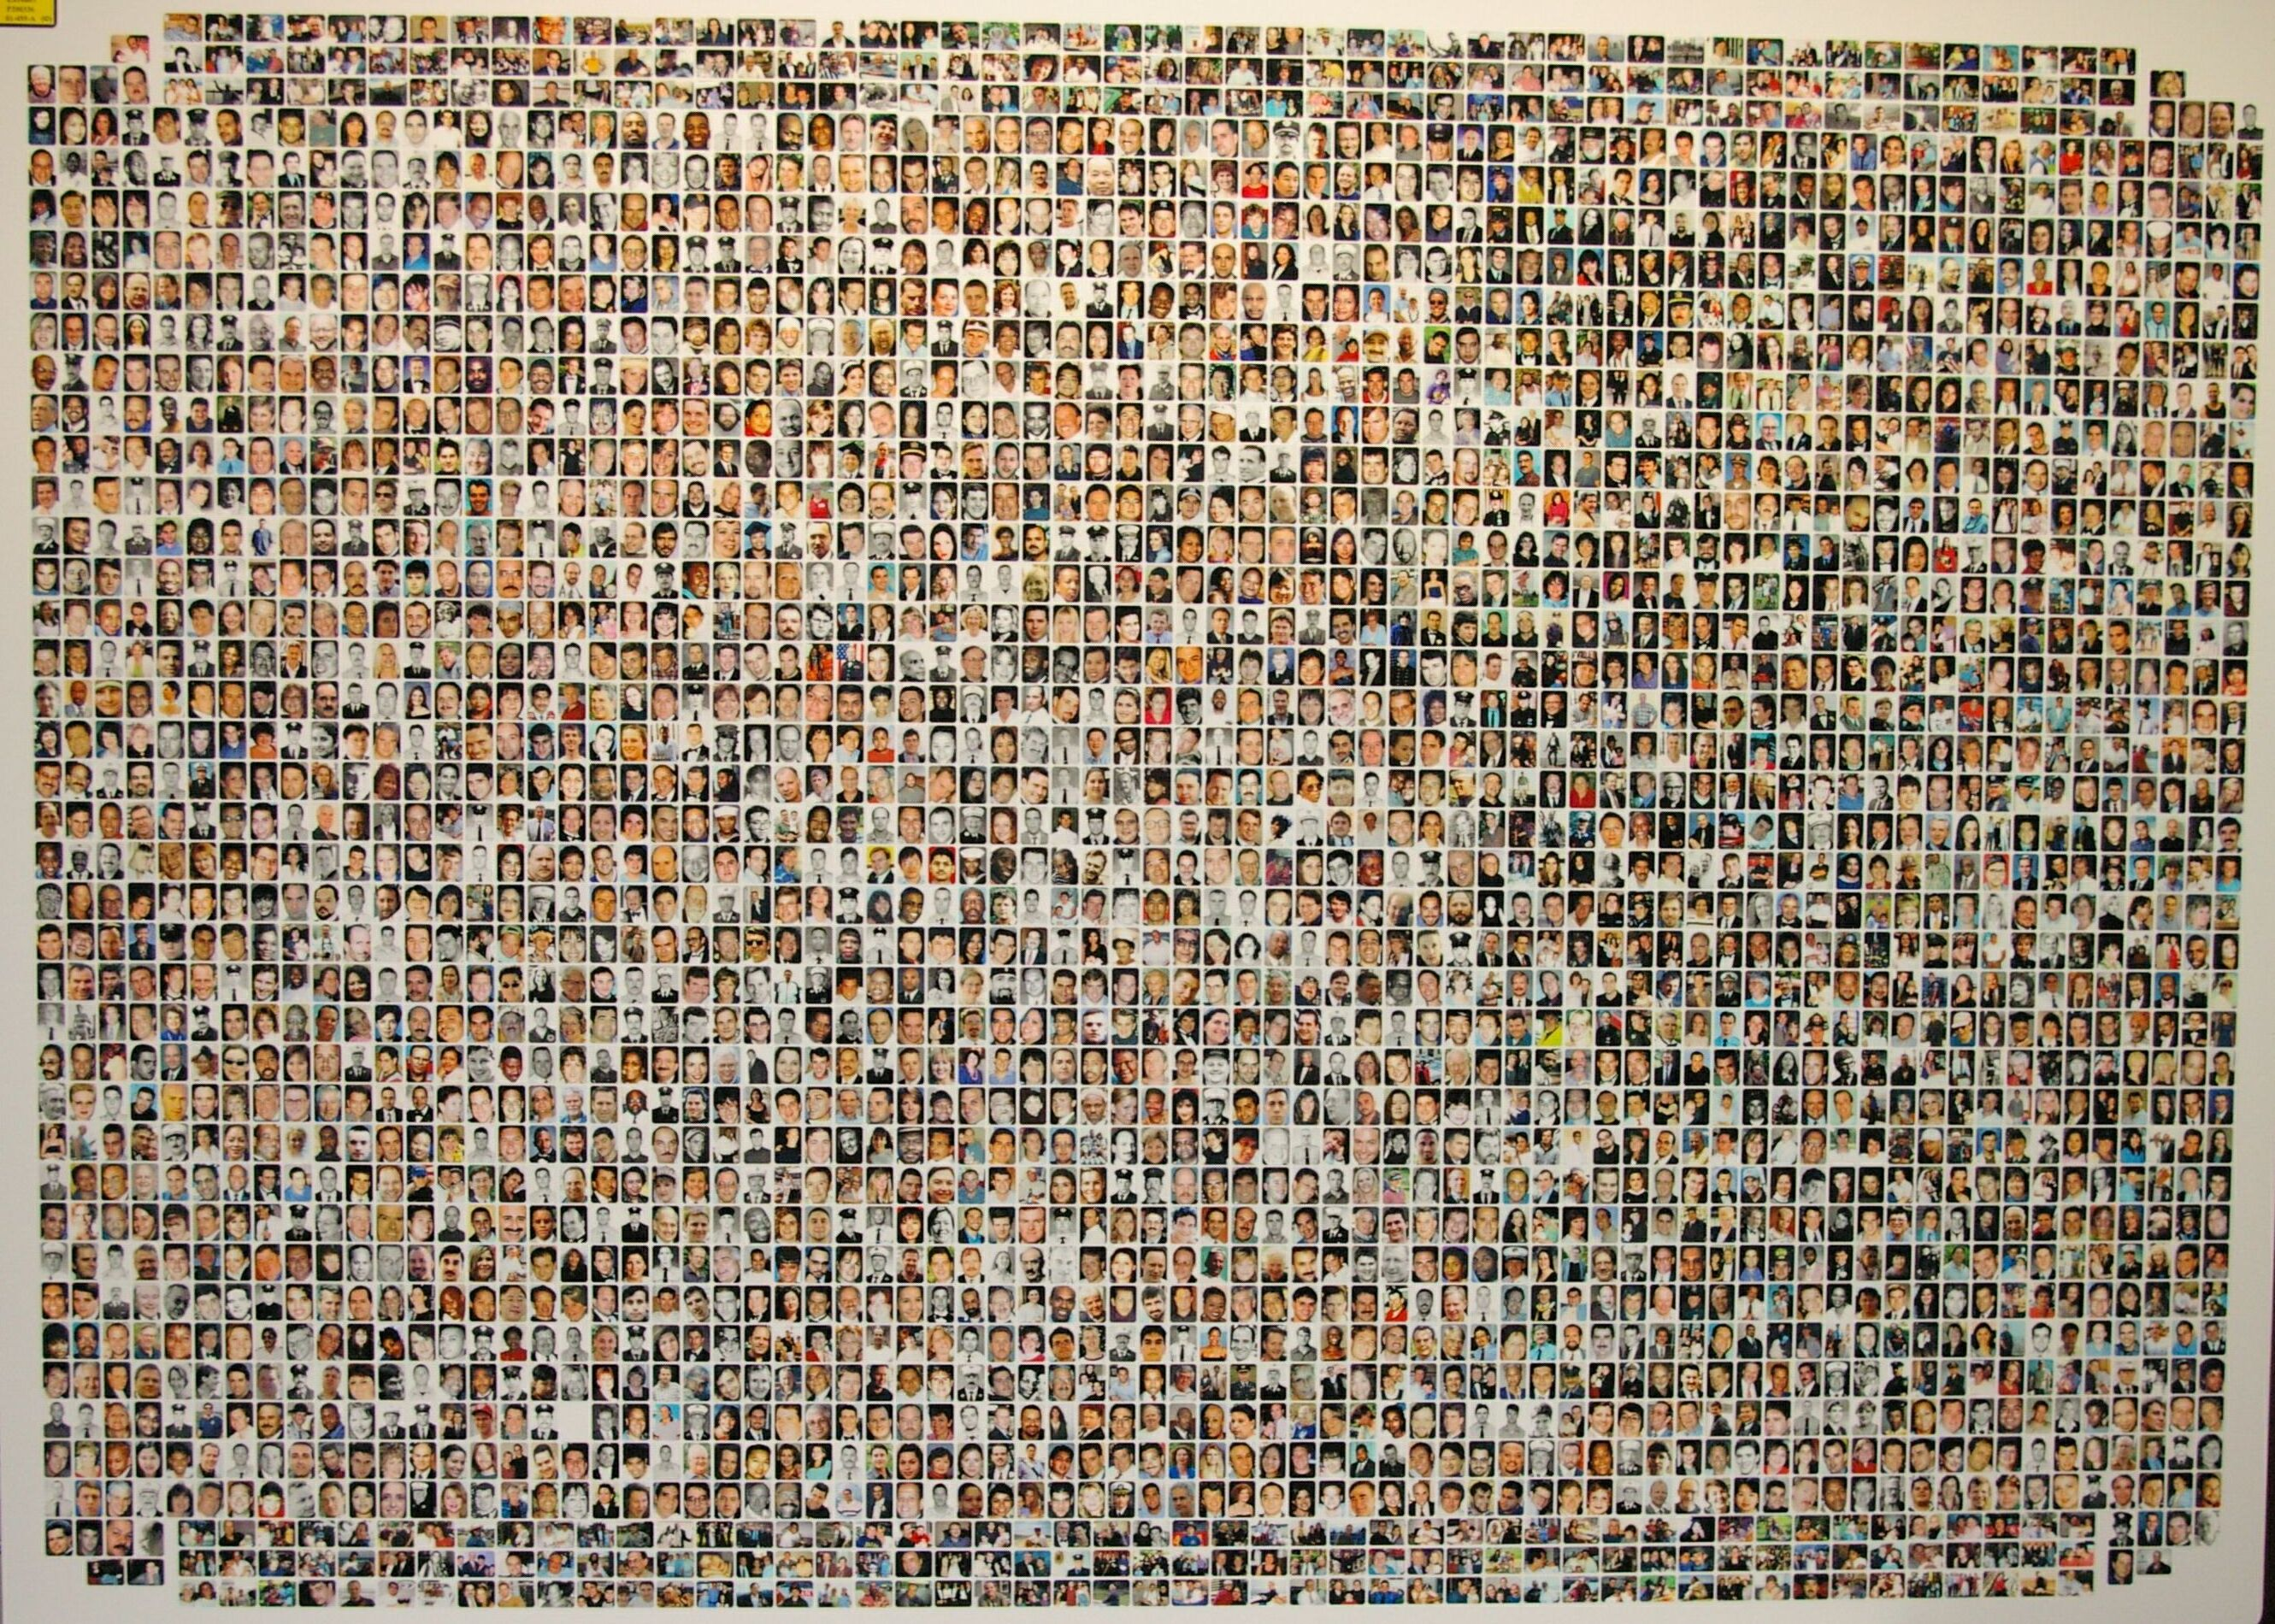 Victims_of_the_September_11_attacks (1)